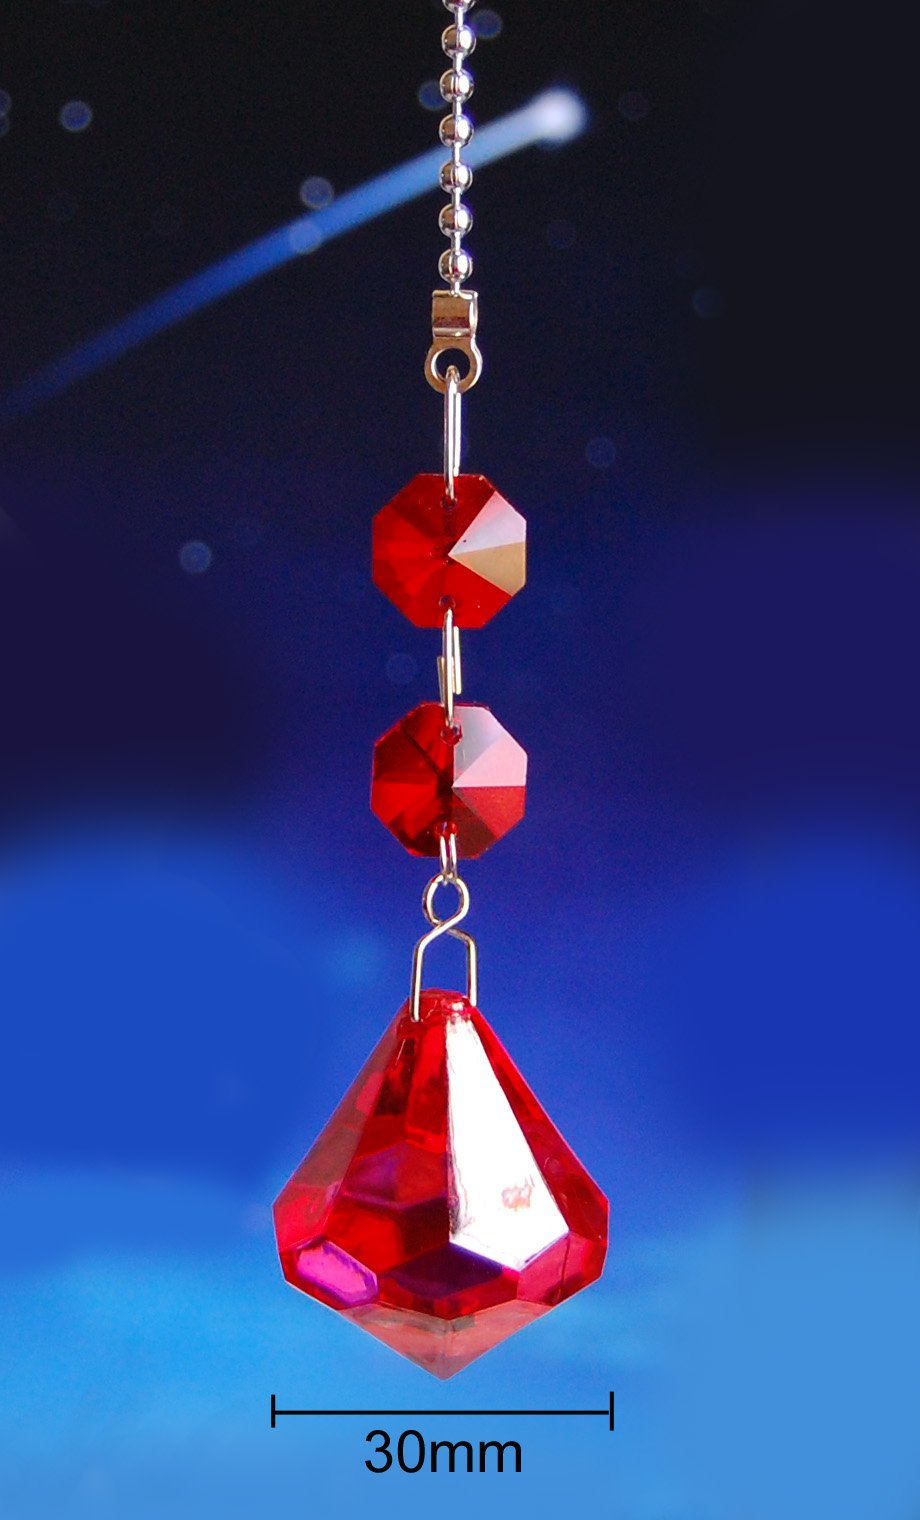 2 of Red Crystal Diamond Ceiling Lighting Fan Pulls Chain by Blessinglight USA